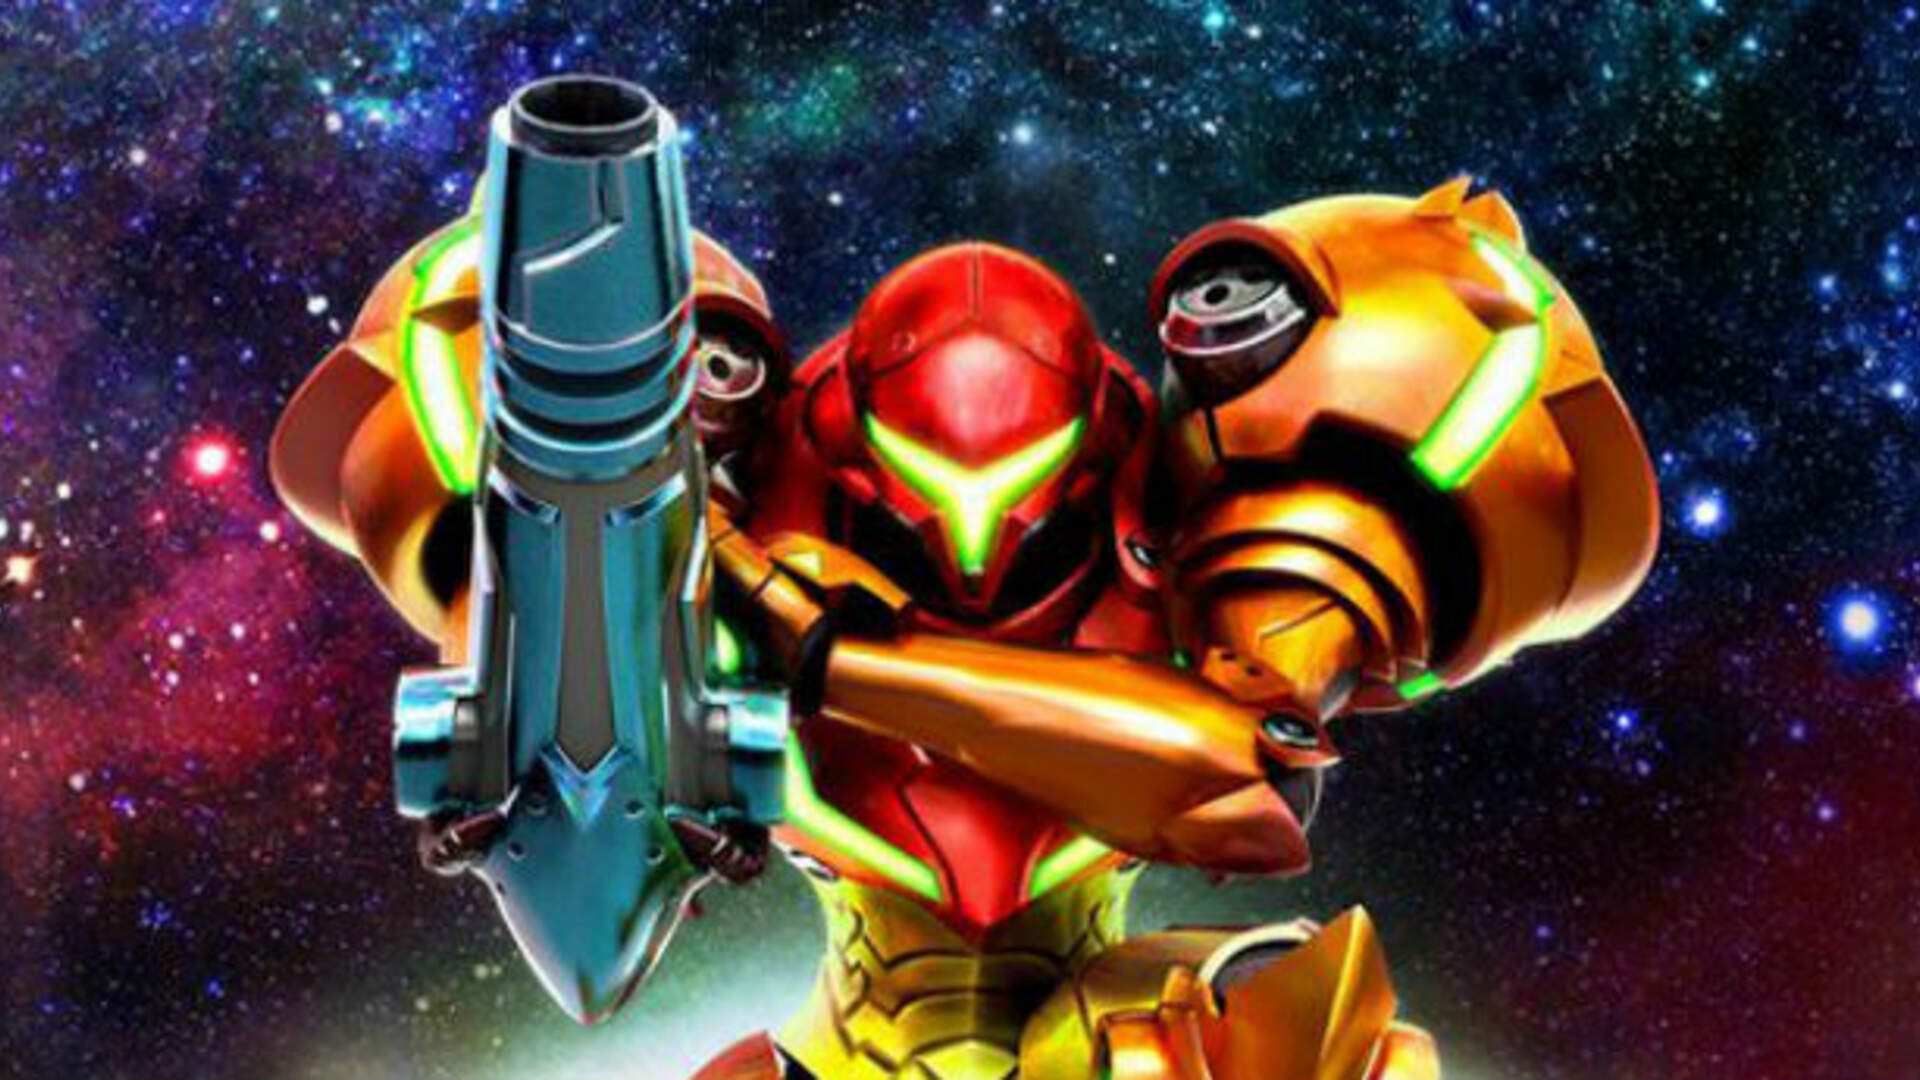 Rumor: a New 2D Metroid Game Is in Development